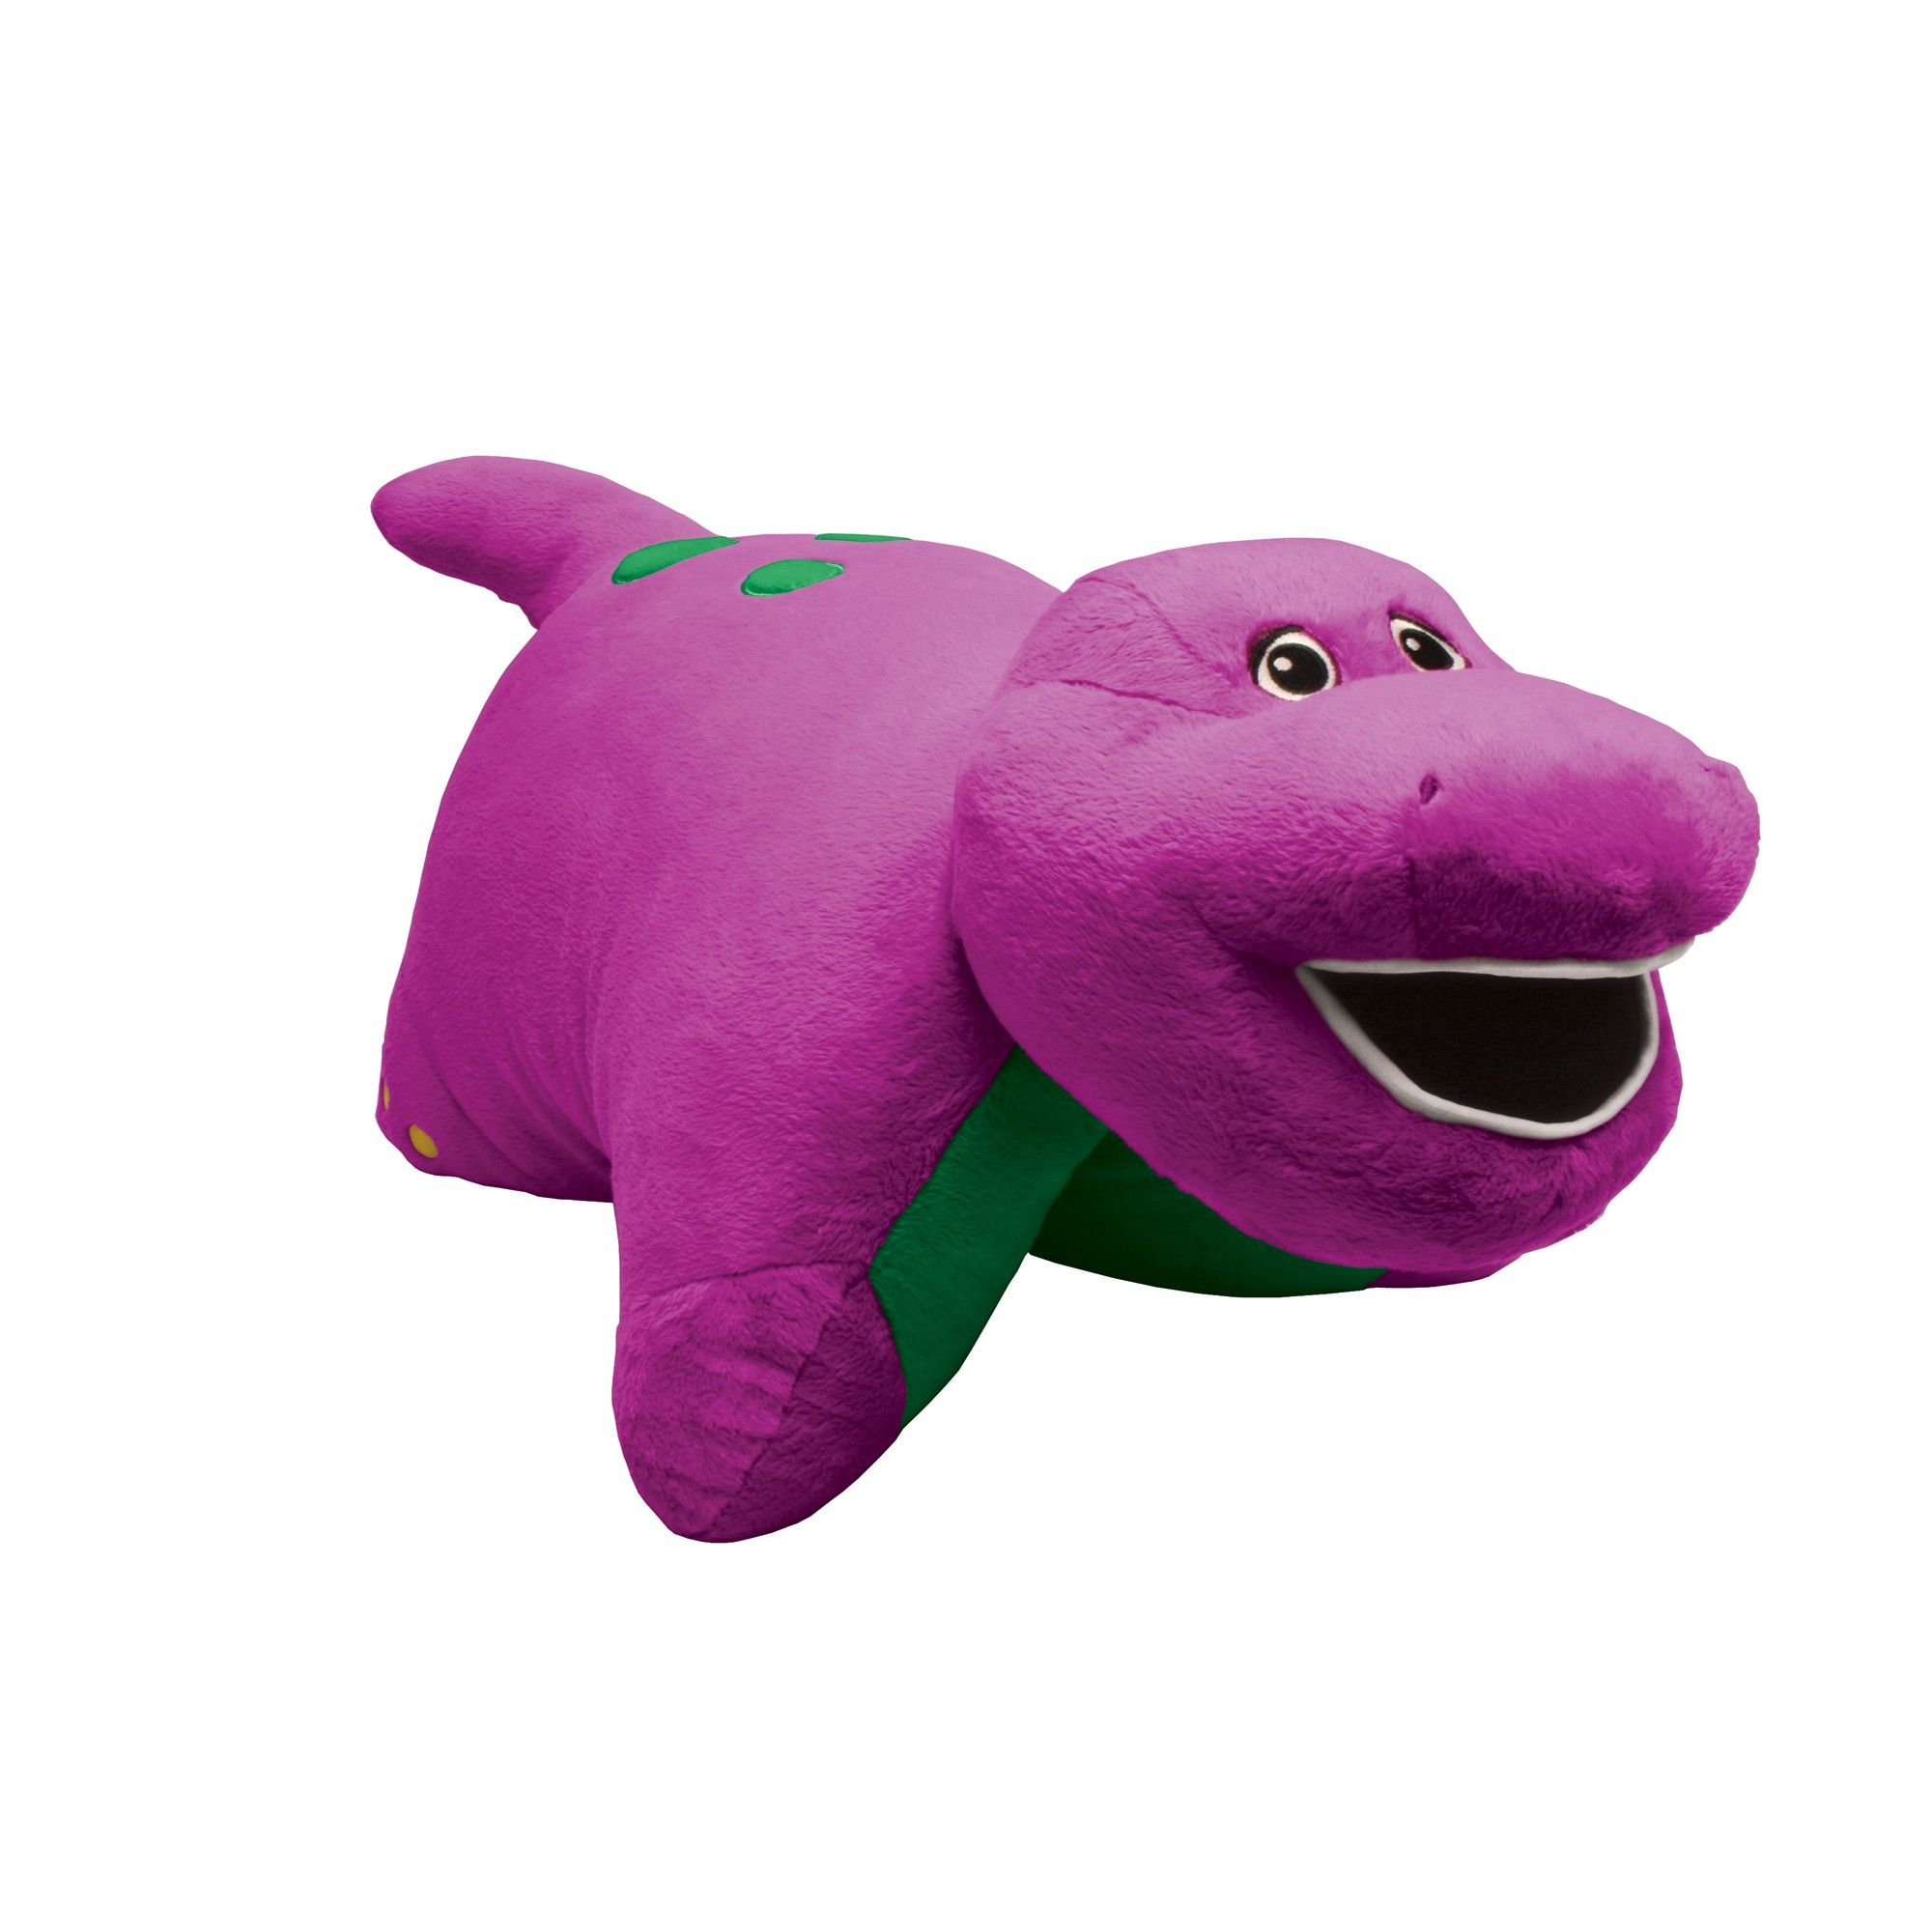 pillow pets barney from pbs kids shop larissa obsession